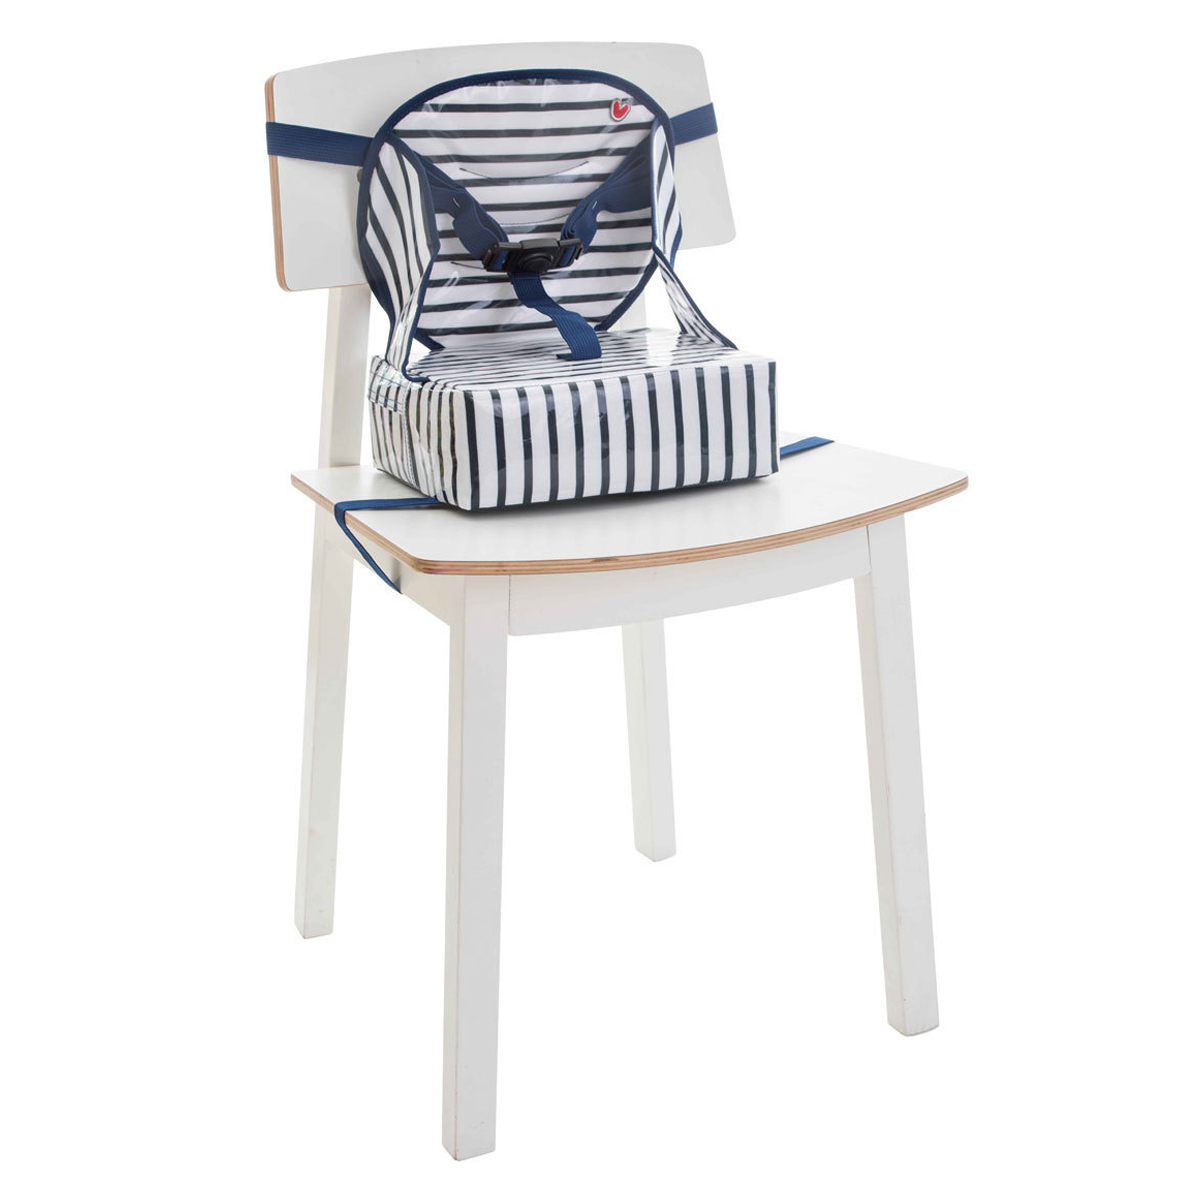 Chaise haute Rehausseur Easy Up pour Chaise - Blue Stripes Rehausseur Easy Up pour Chaise - Blue Stripes